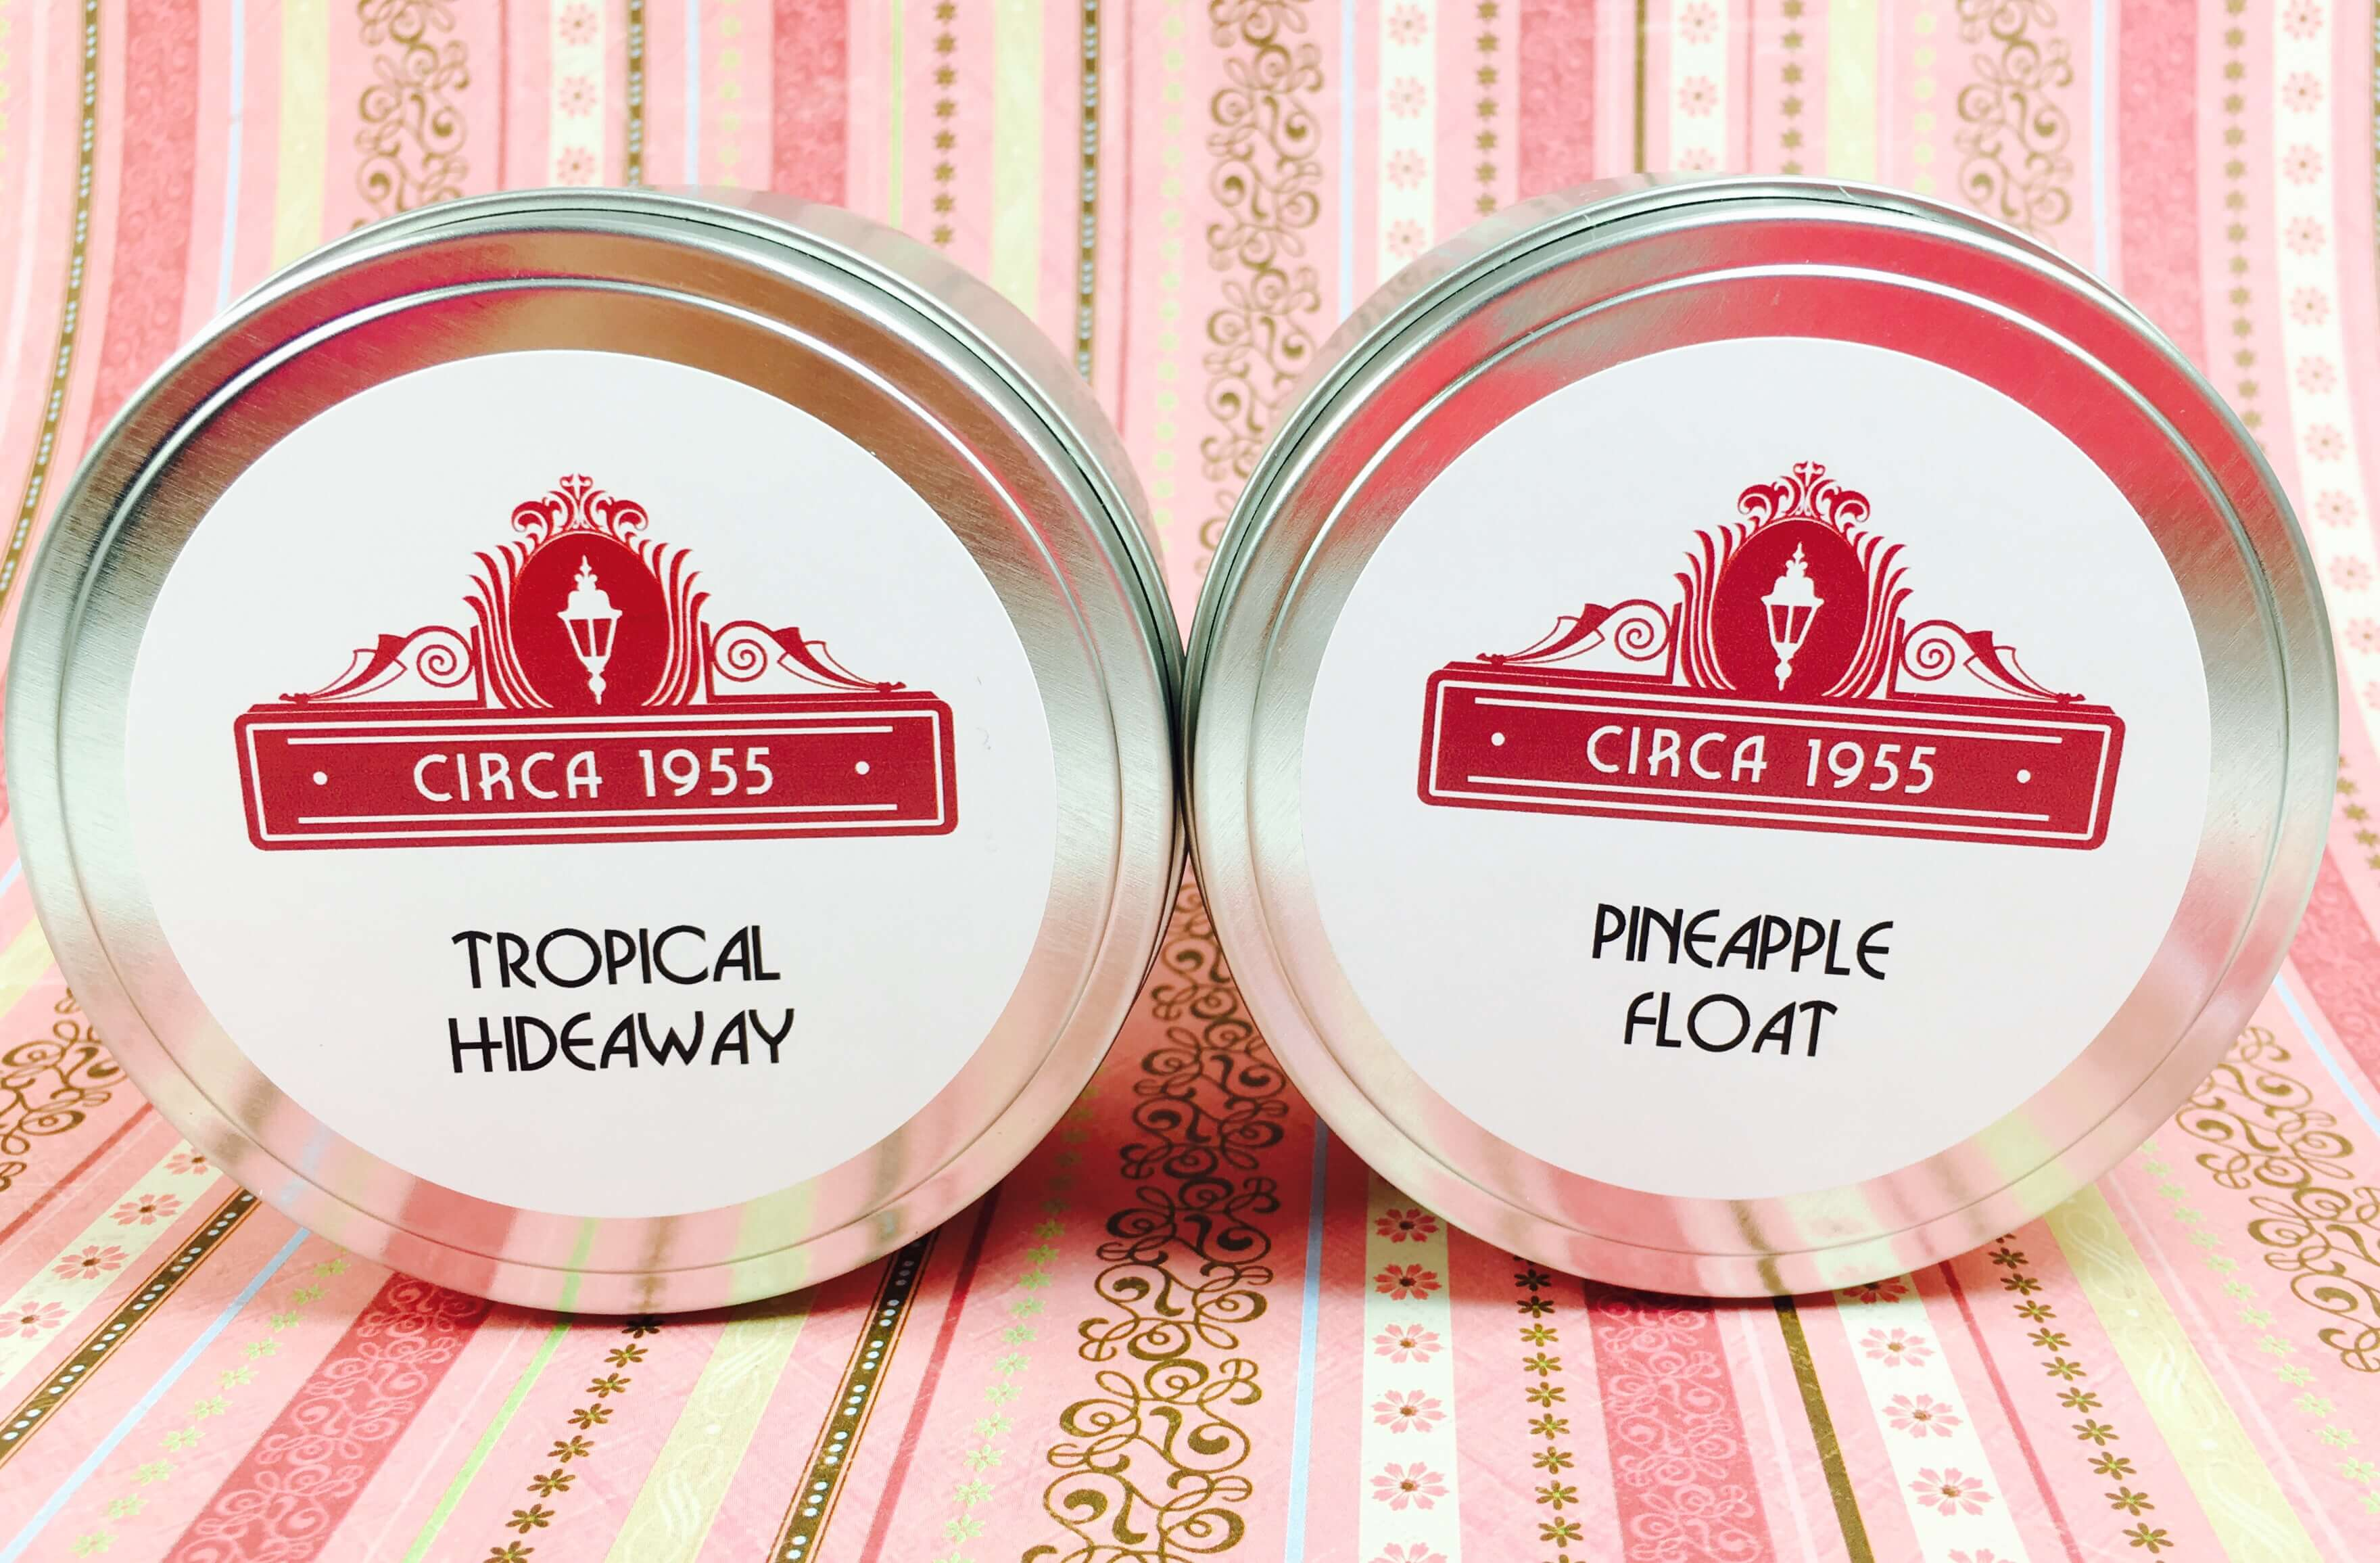 Circa 1955 Candle Subscription Box Review– August 2016